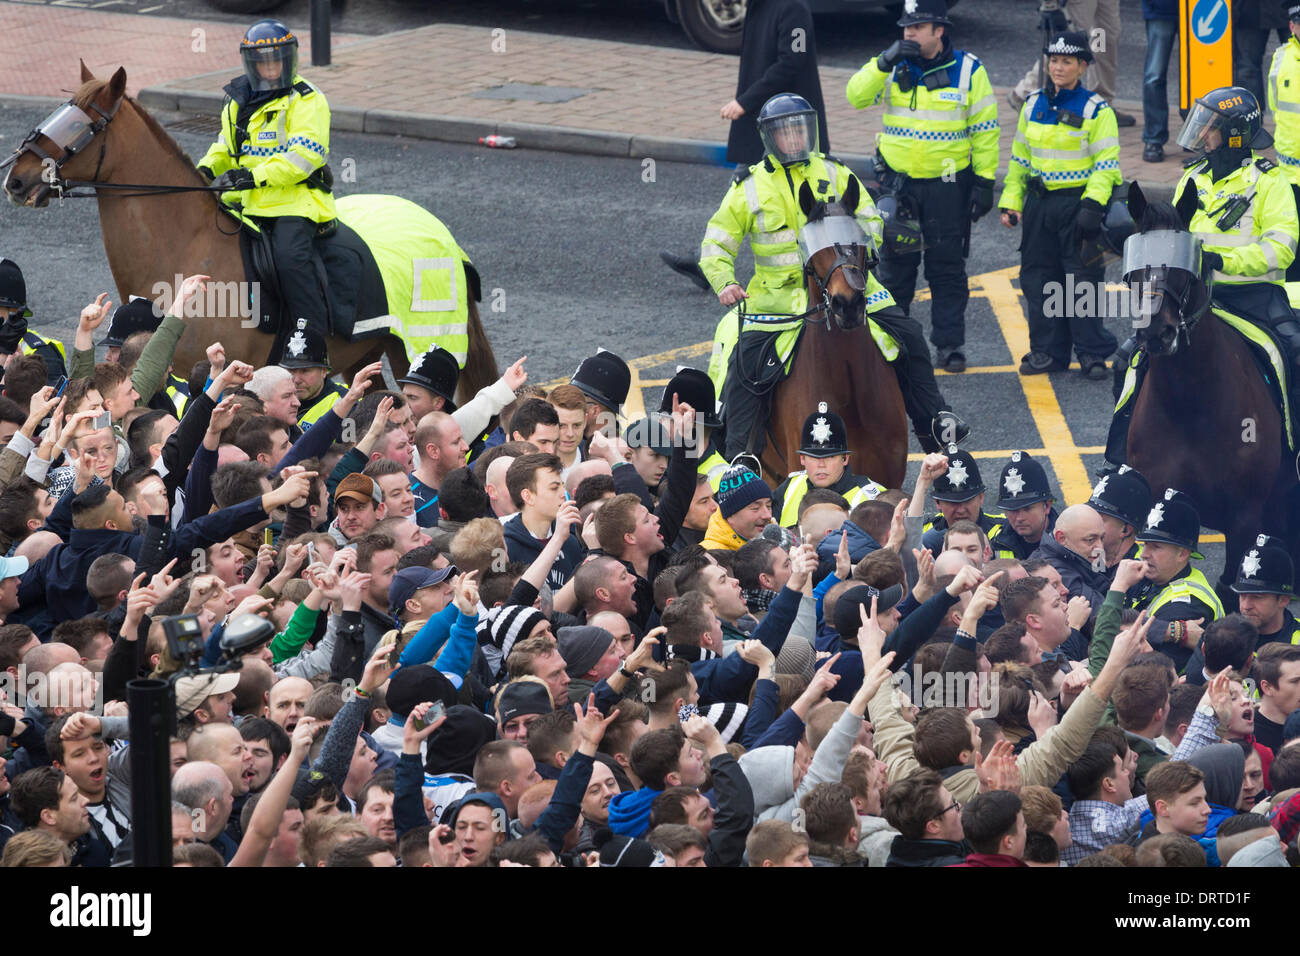 Newcastle United supporters taunting Sunderland supporters who are being escorted to stadium from train station ahead of Newcastle v Sunderland match. UK - Stock Image